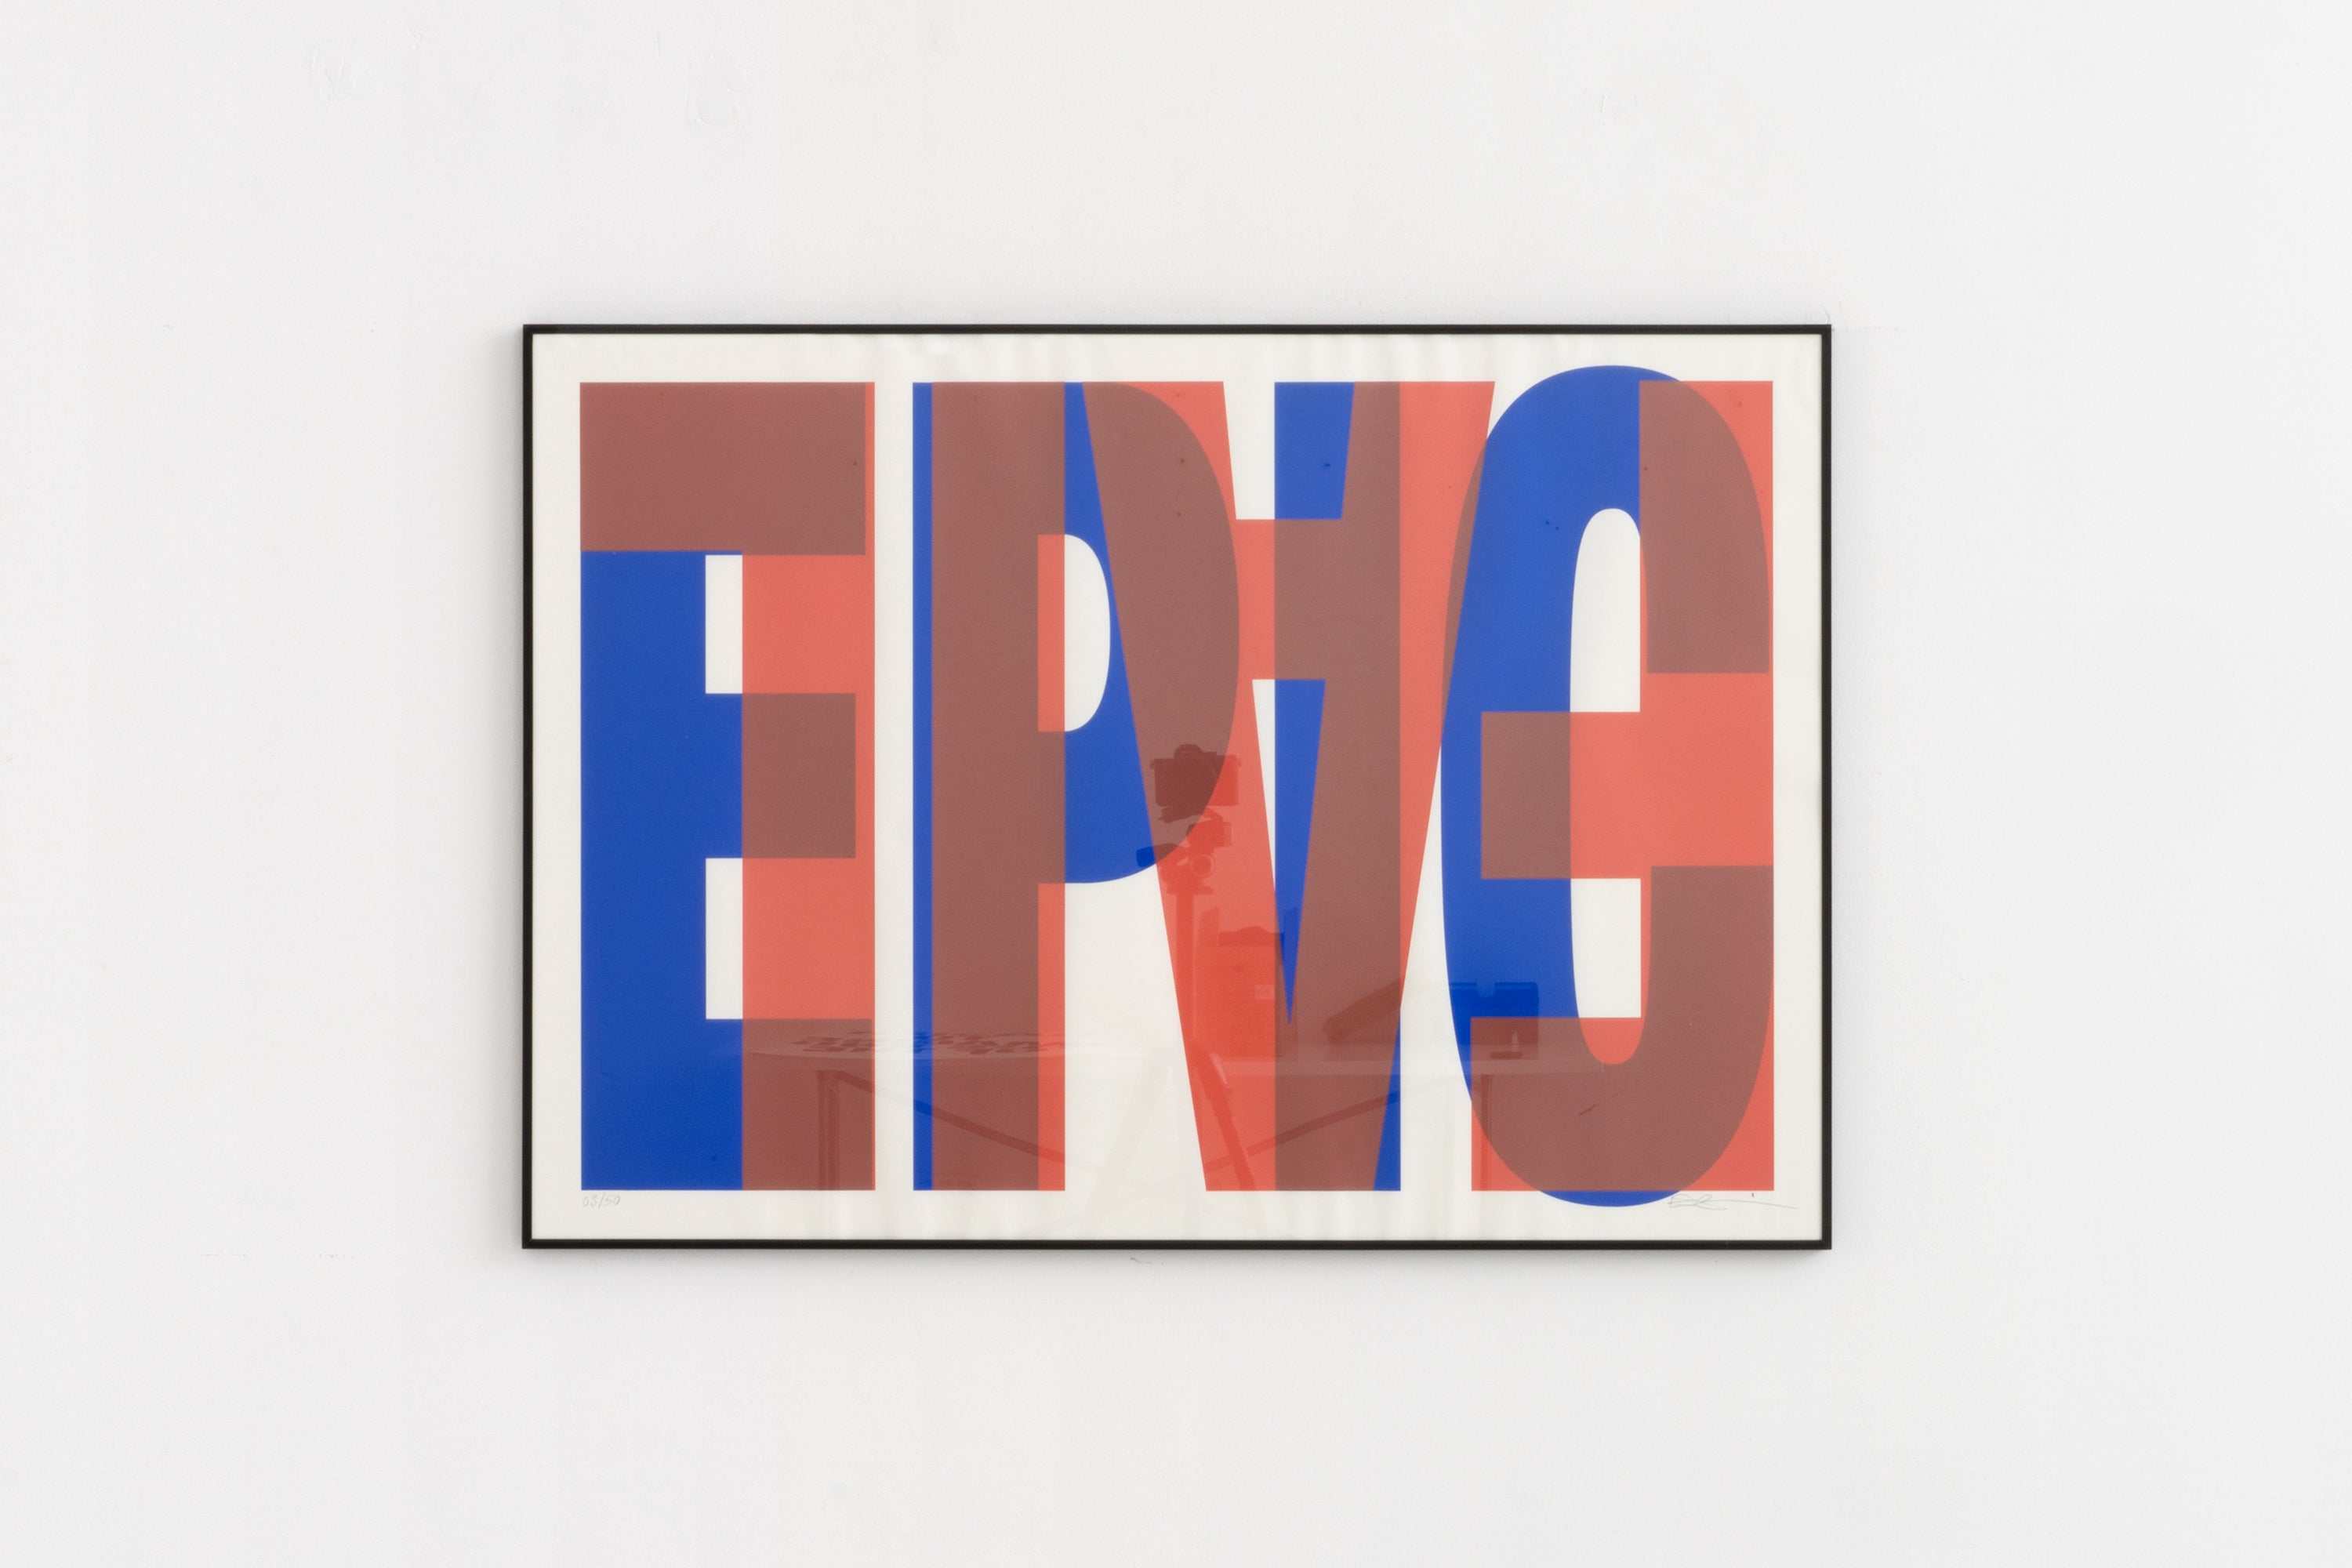 EPIC FAIL SINGLE BLUE&RED